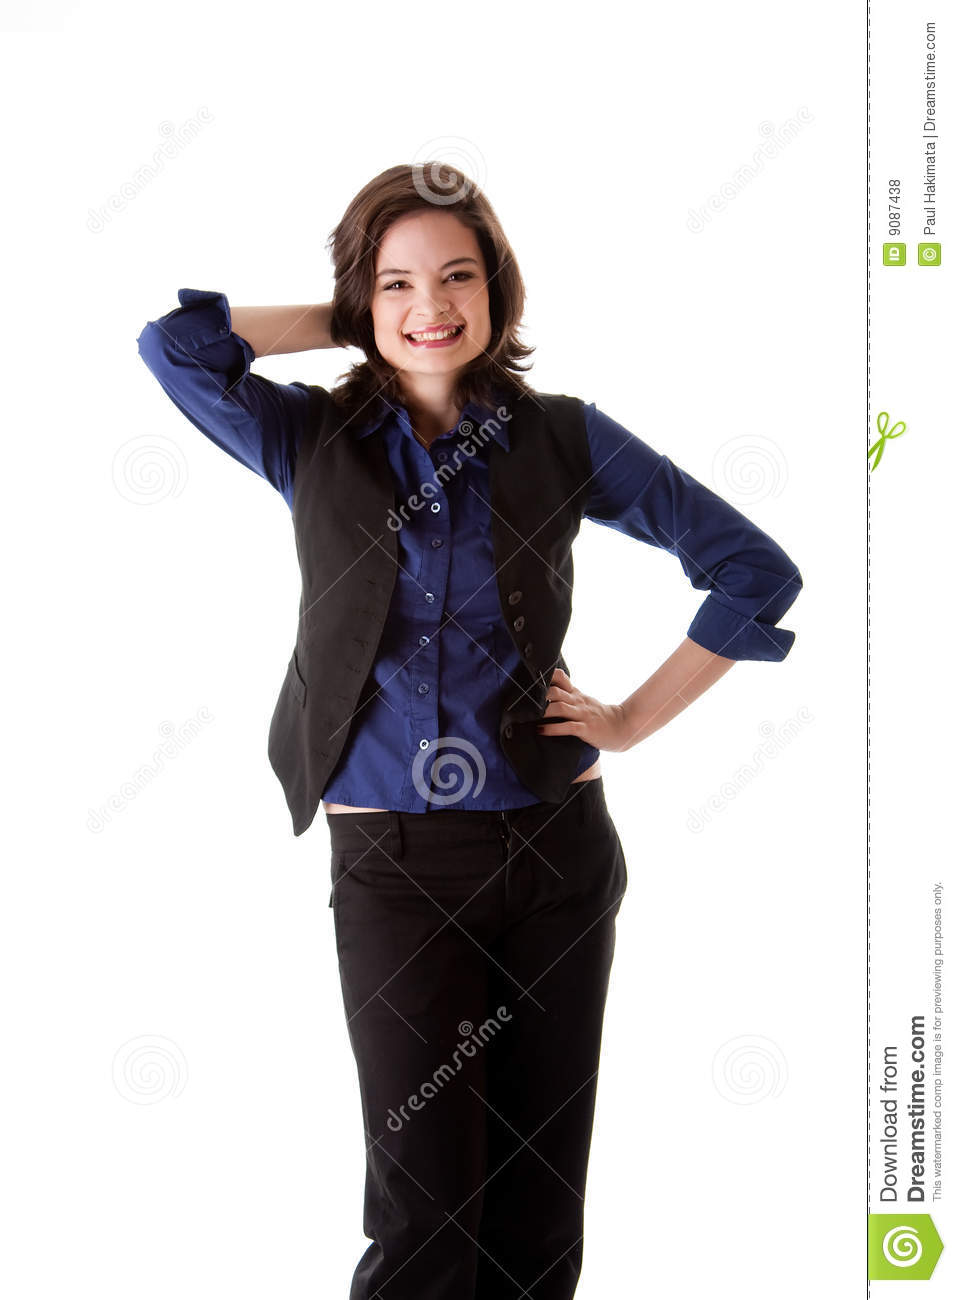 Young Business Woman Standing Smiling Royalty Free Stock ...